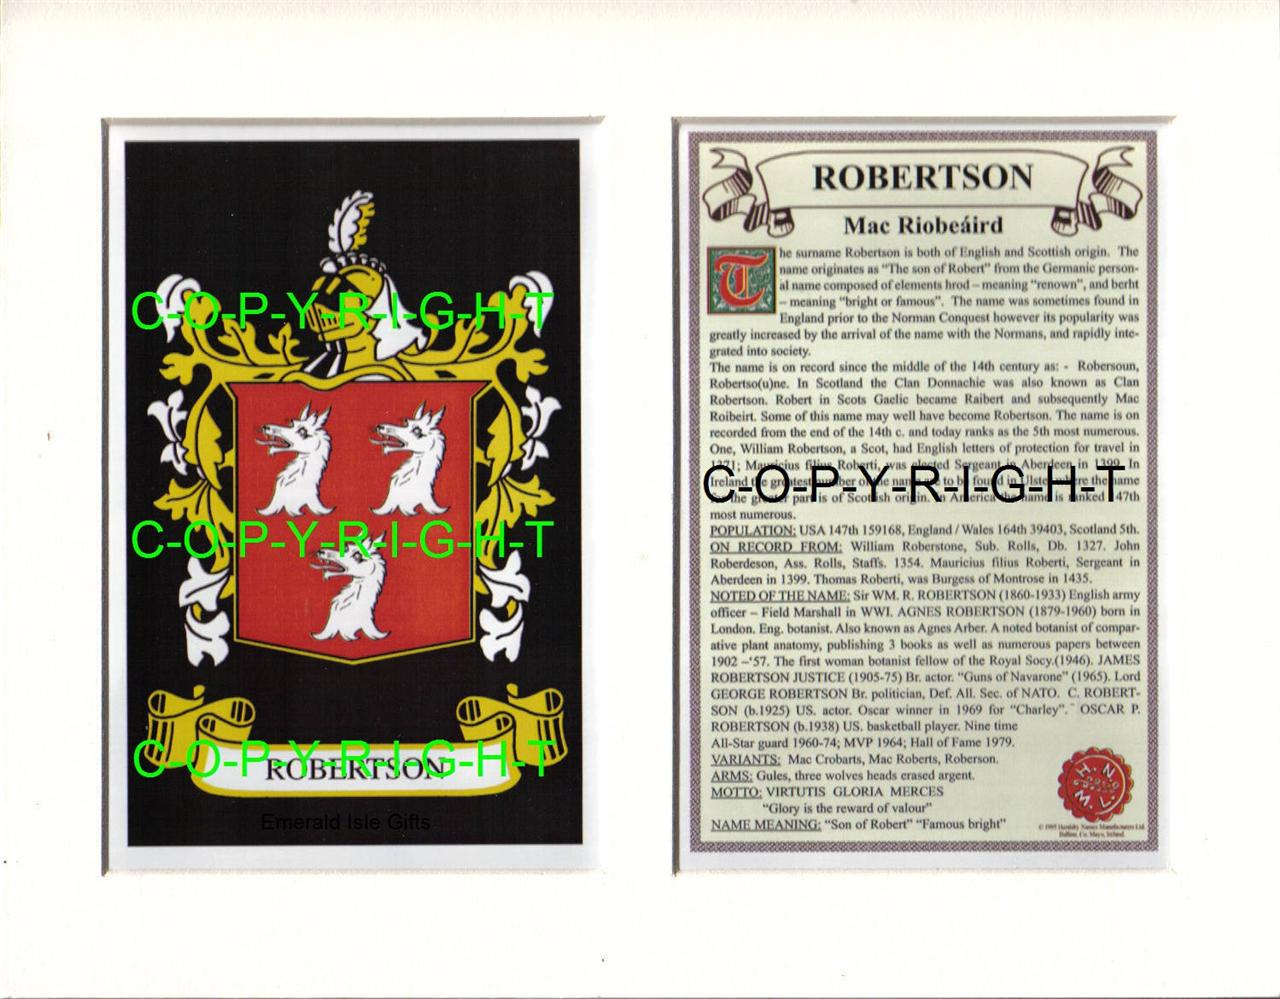 ROBERTSON-Family-Coat-of-Arms-Crest-History-Available-Mounted-or-Framed